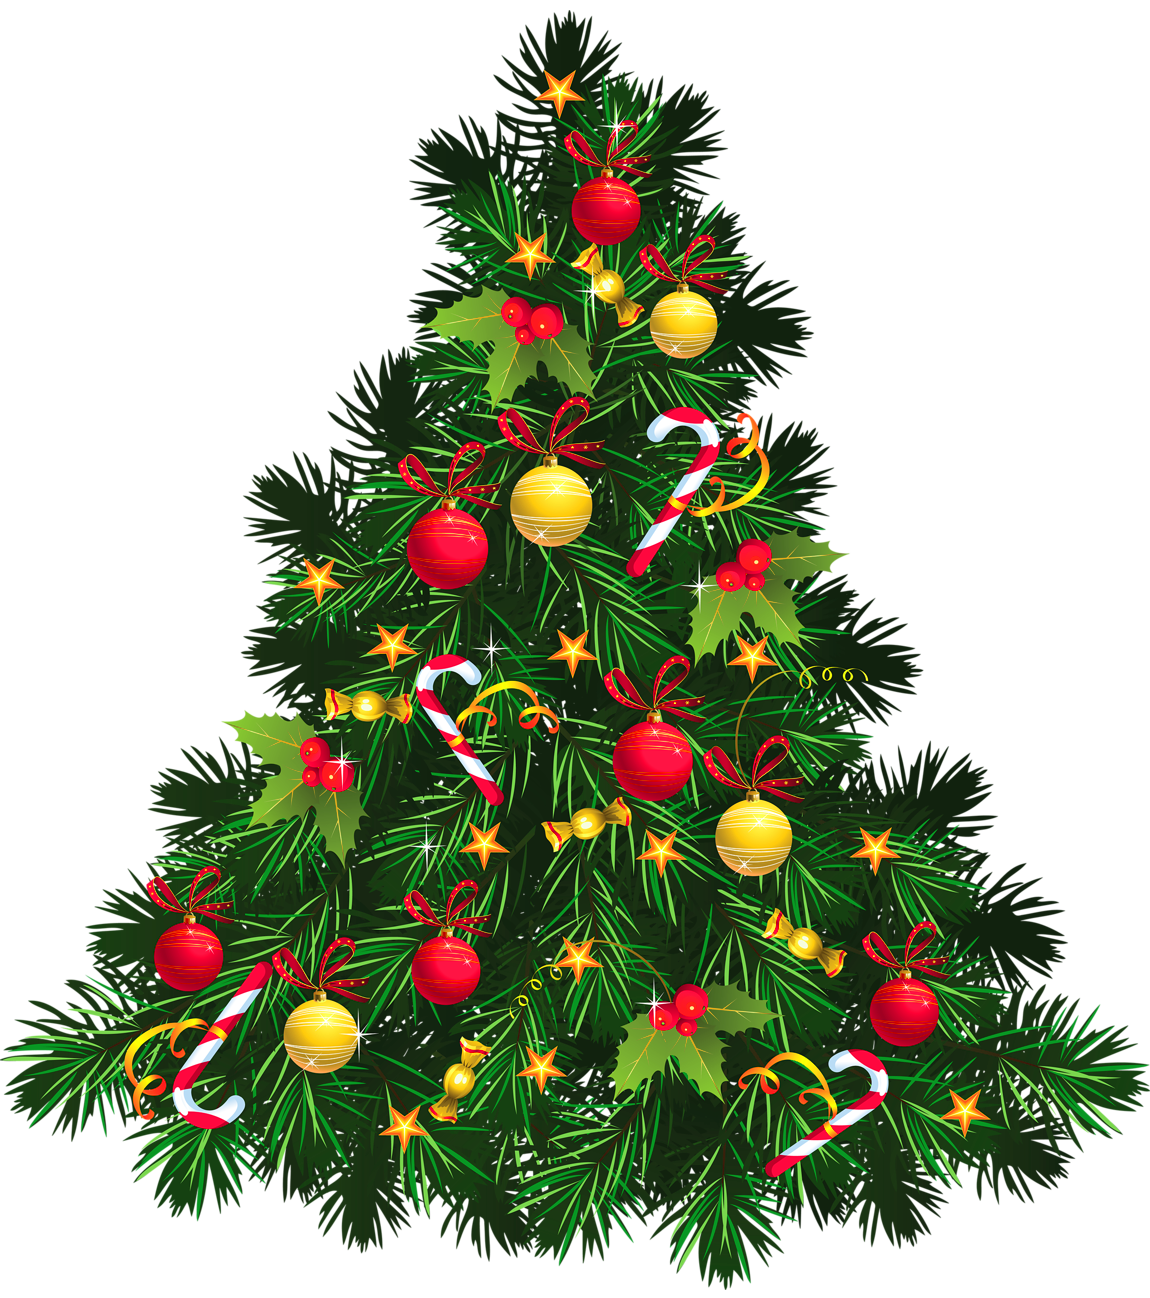 Christmas tree transparent background png. With ornaments picture gallery